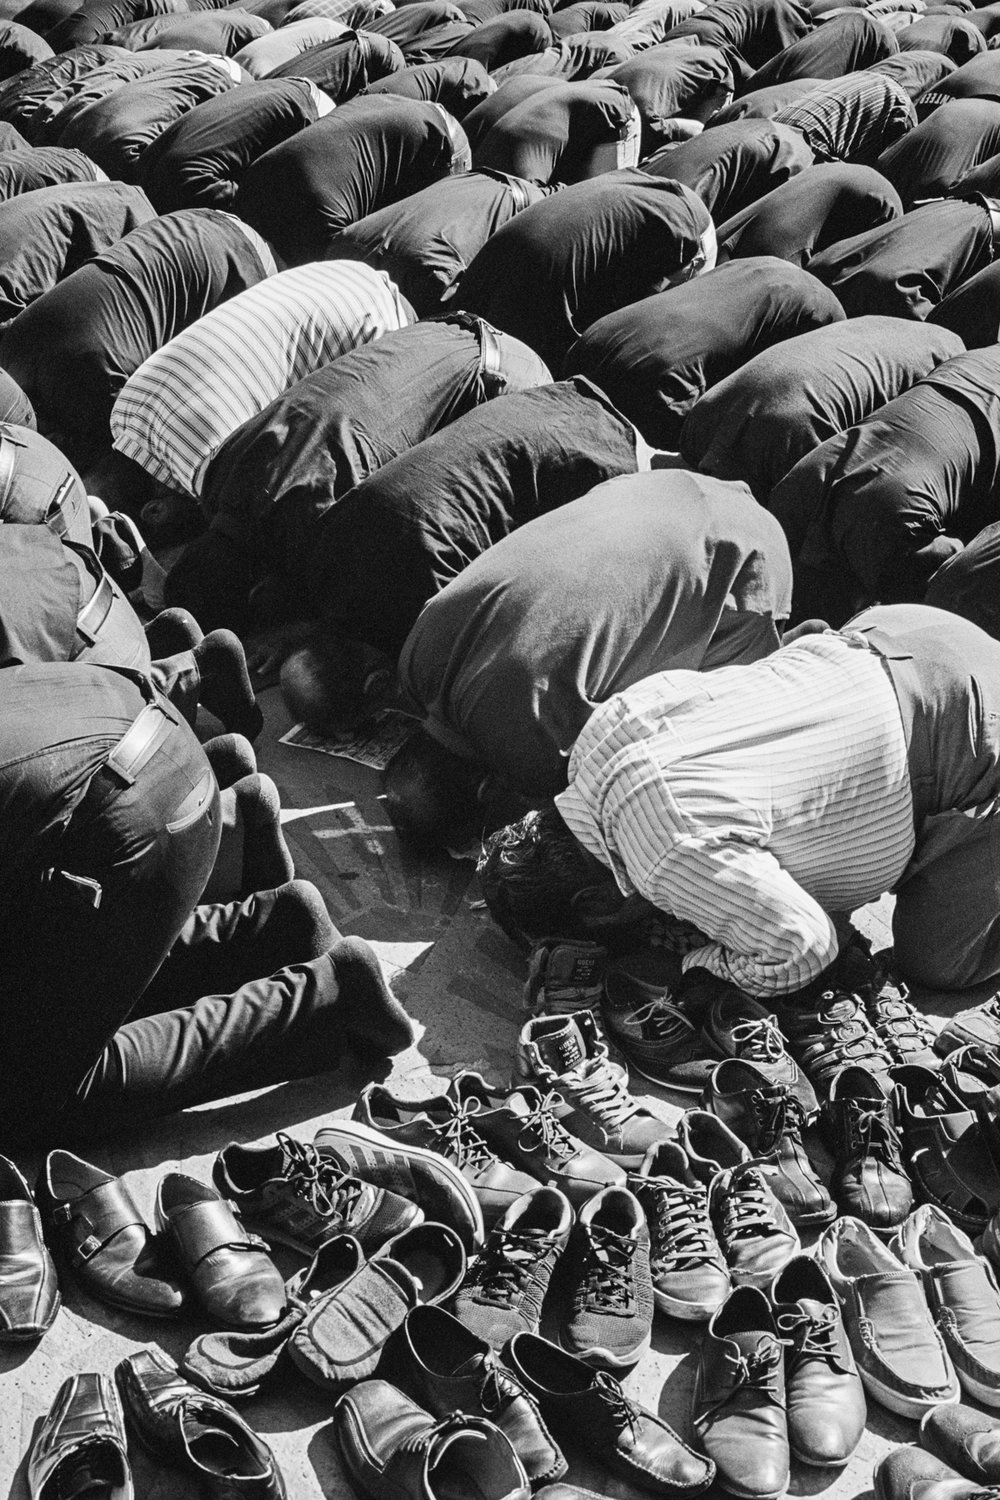 Men praying after a procession in commemoration of Husayn ibn Ali, Los Angeles, California, 2016.